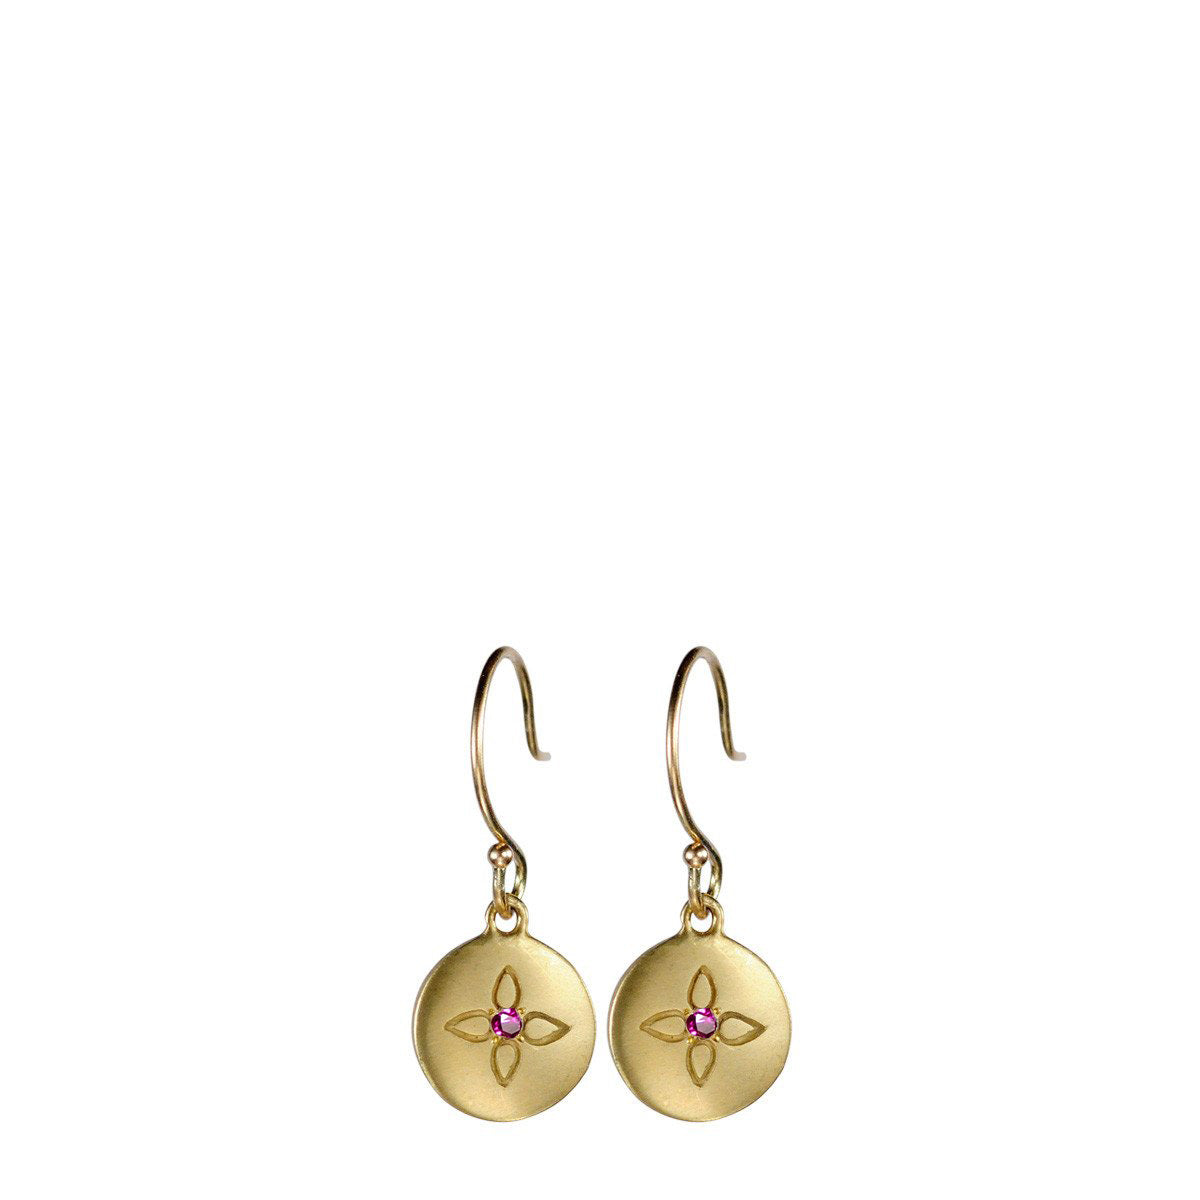 18K Gold Lotus Drop Earrings with Rubies